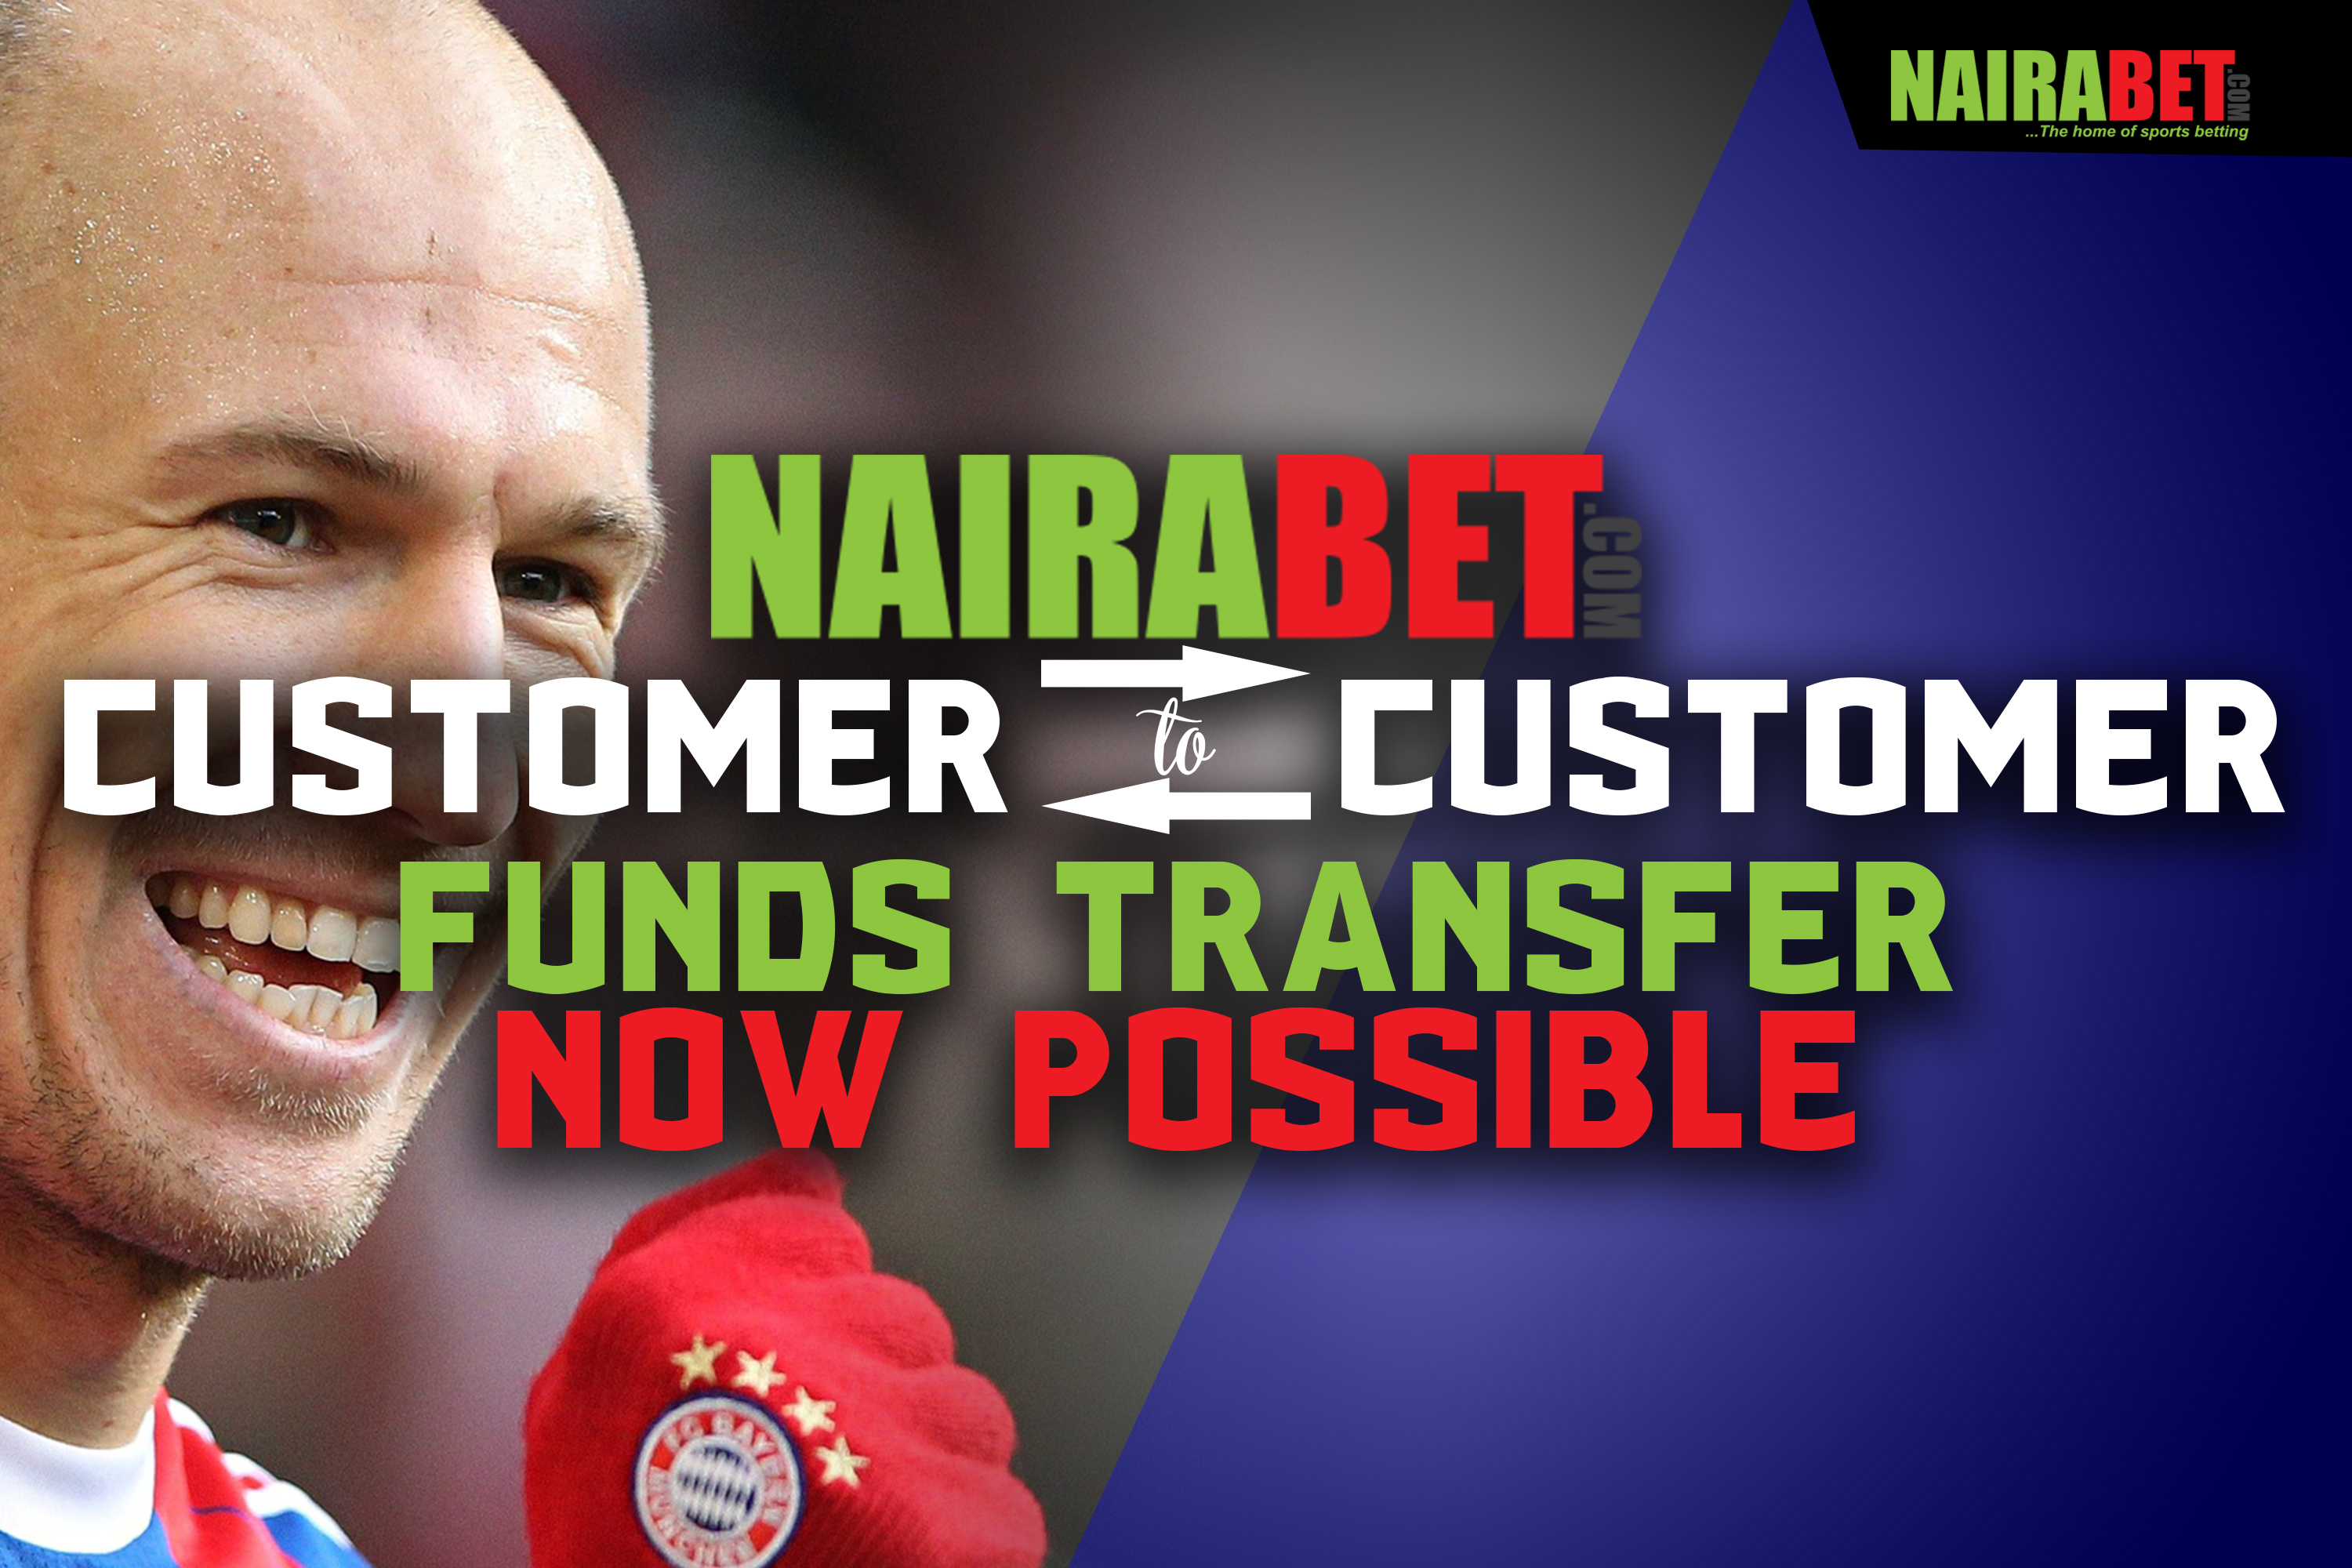 nairabet customer to customer transfer